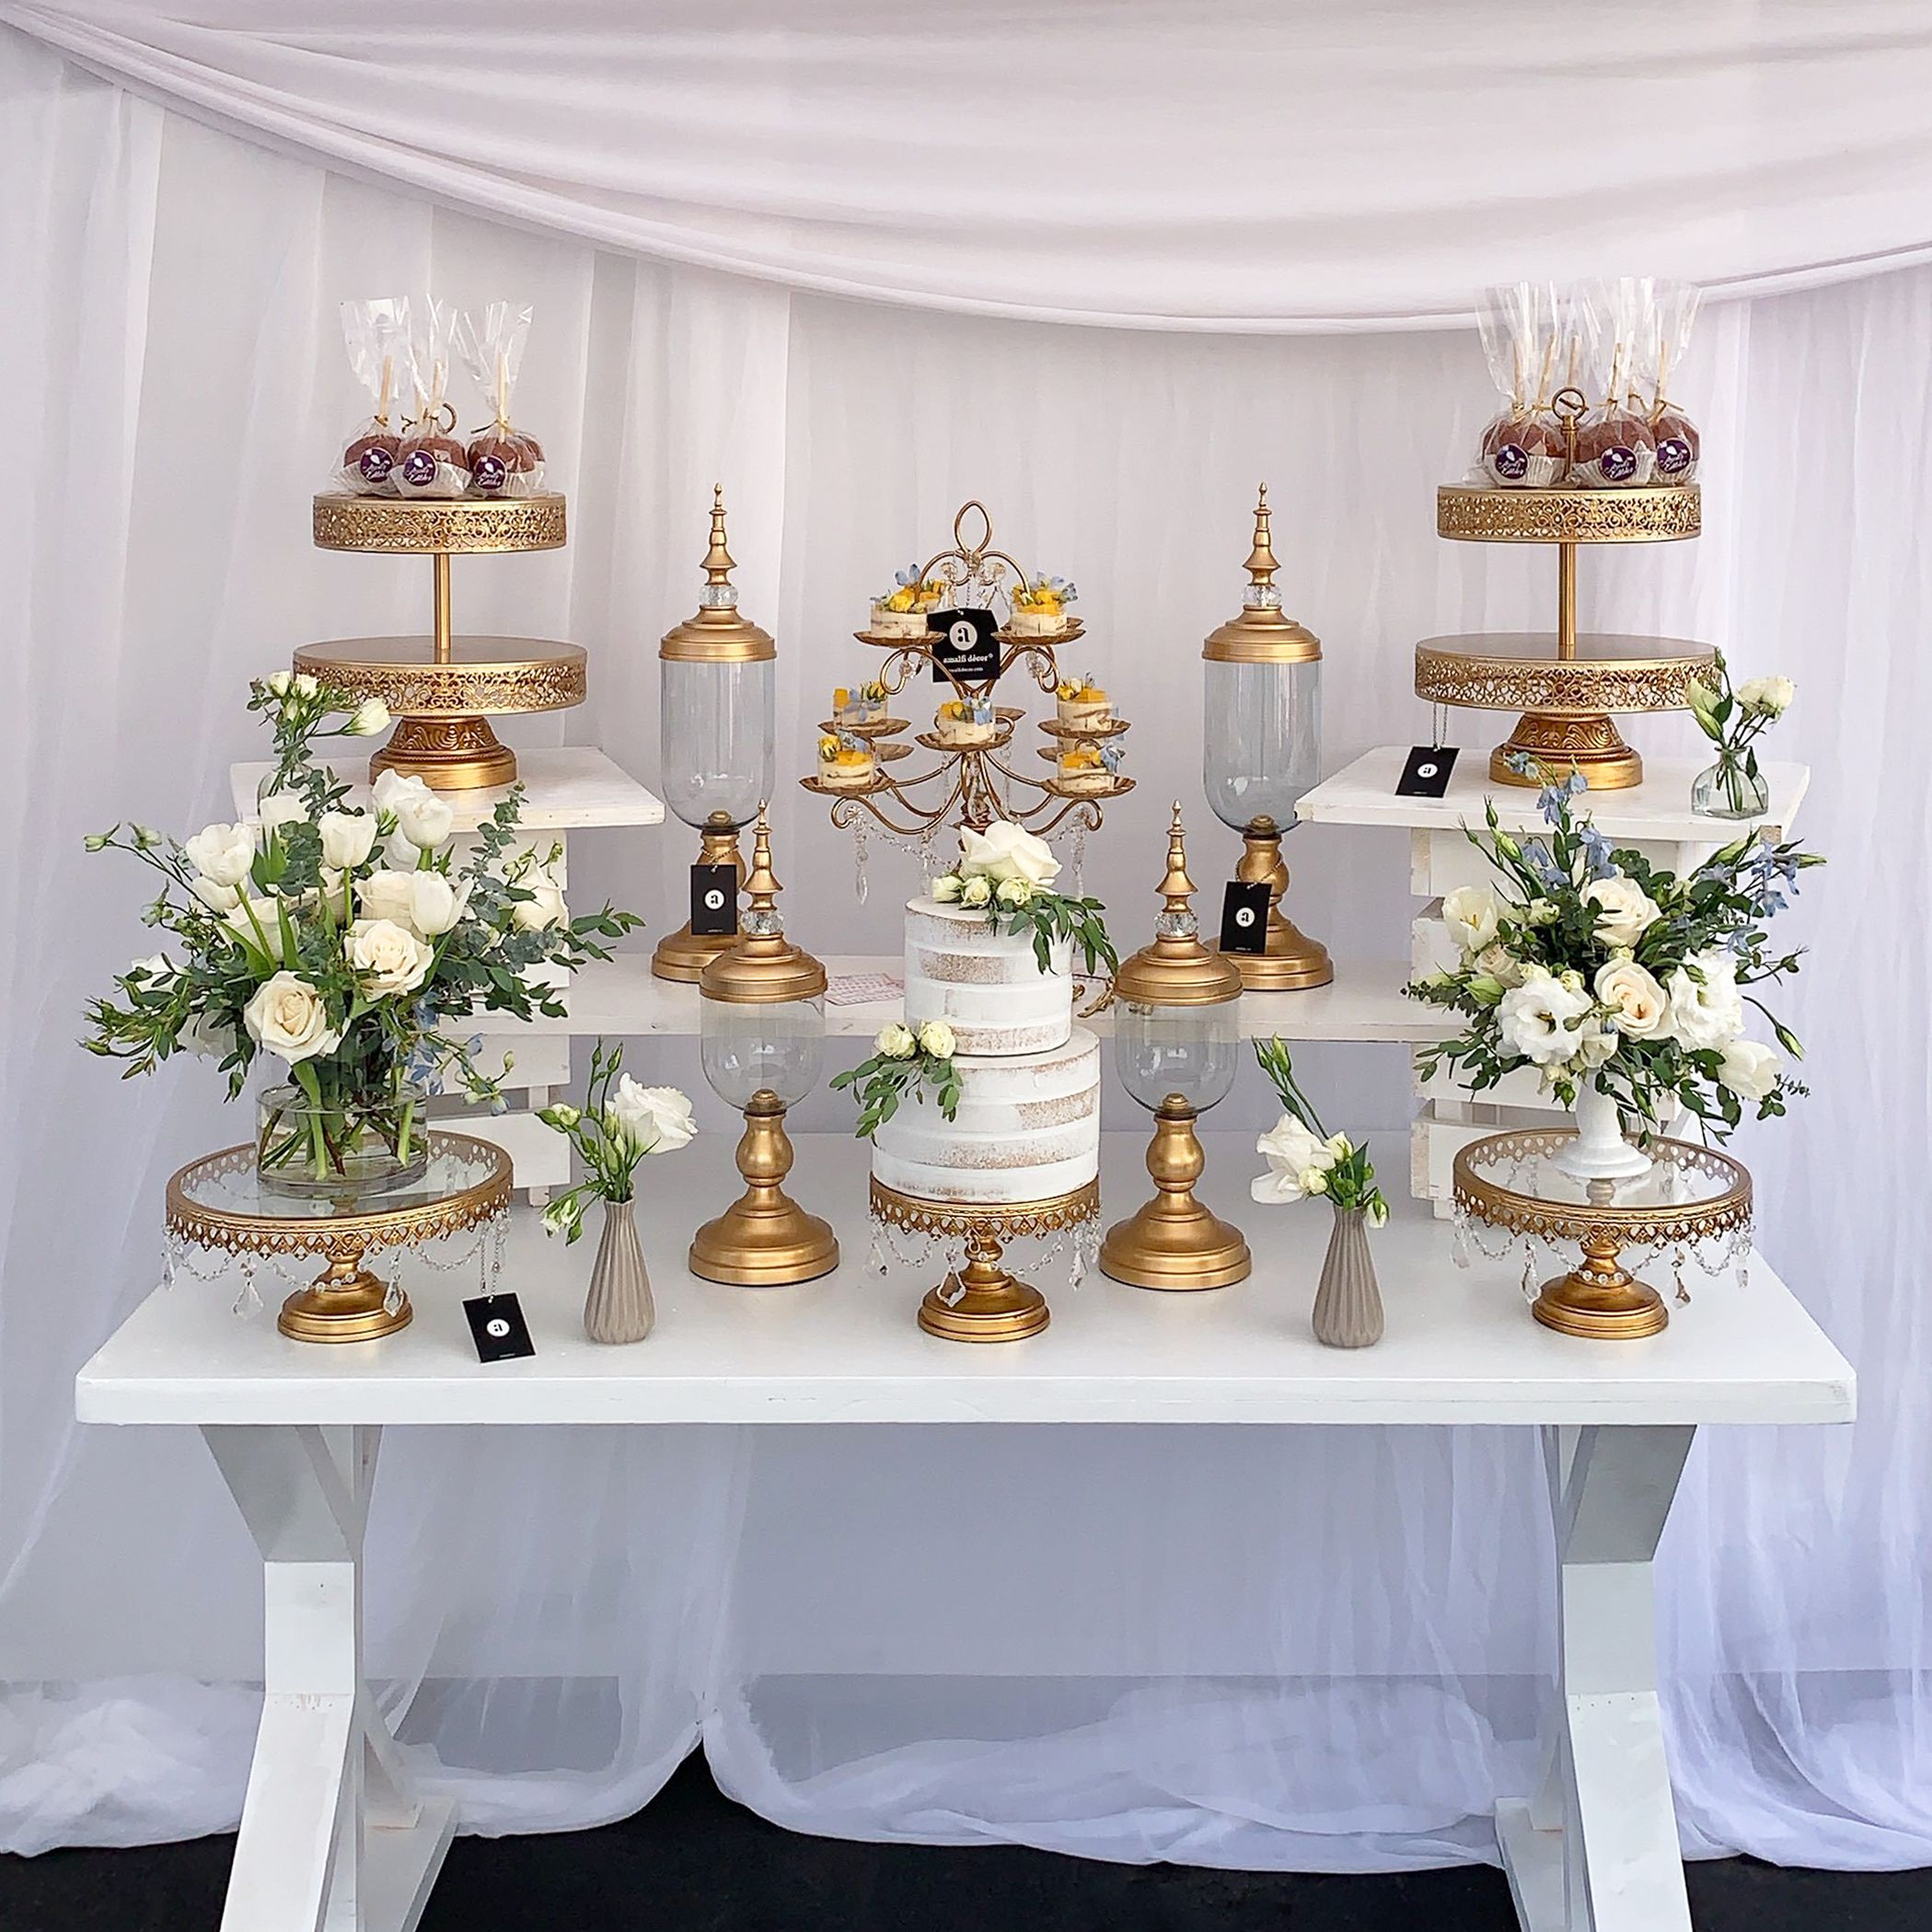 Rustic Gold And White Dessert Table We Had The Pleasure Of Styling For Majesticinglewoodpartyrentals Ve White Dessert Tables White Desserts Gold Dessert Table